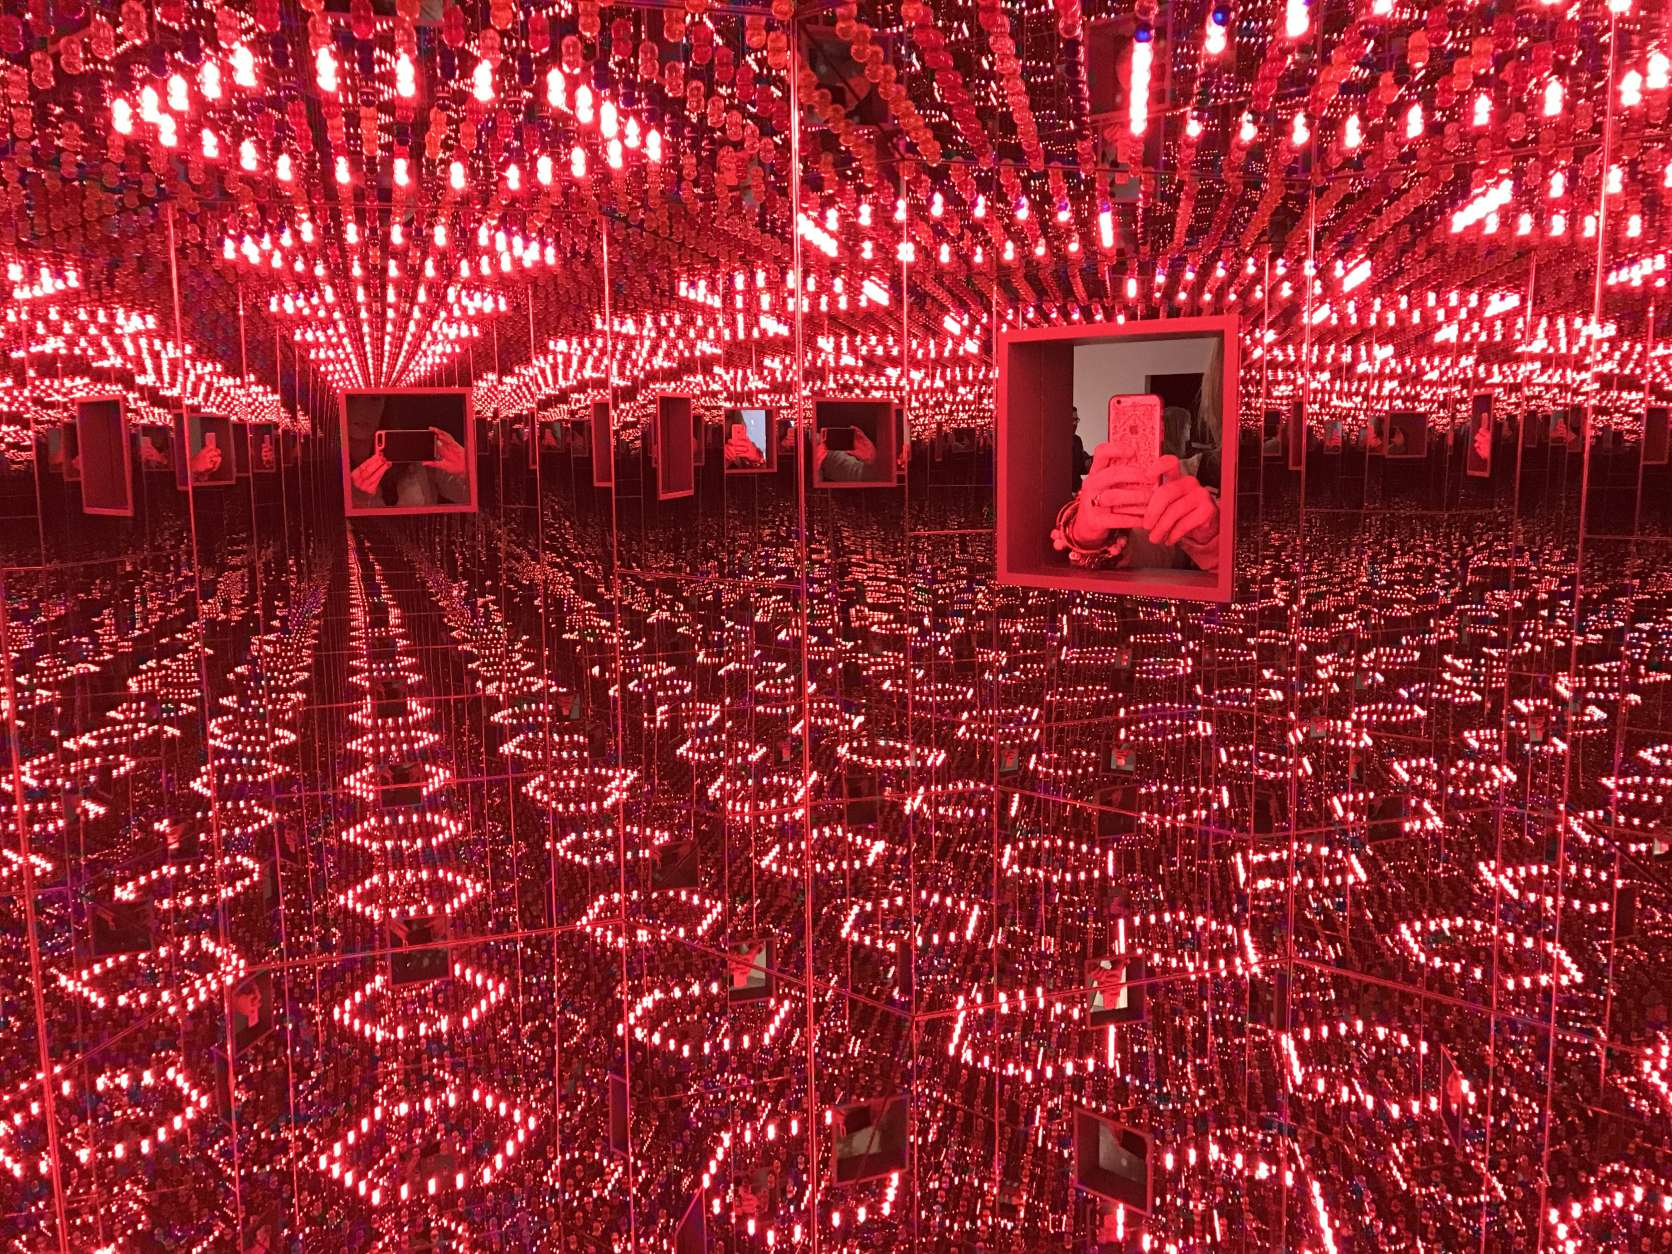 There are two windows into the octagonal Love Forever mirrored room so visitors can interact with each other inside. (WTOP/Megan Cloherty)